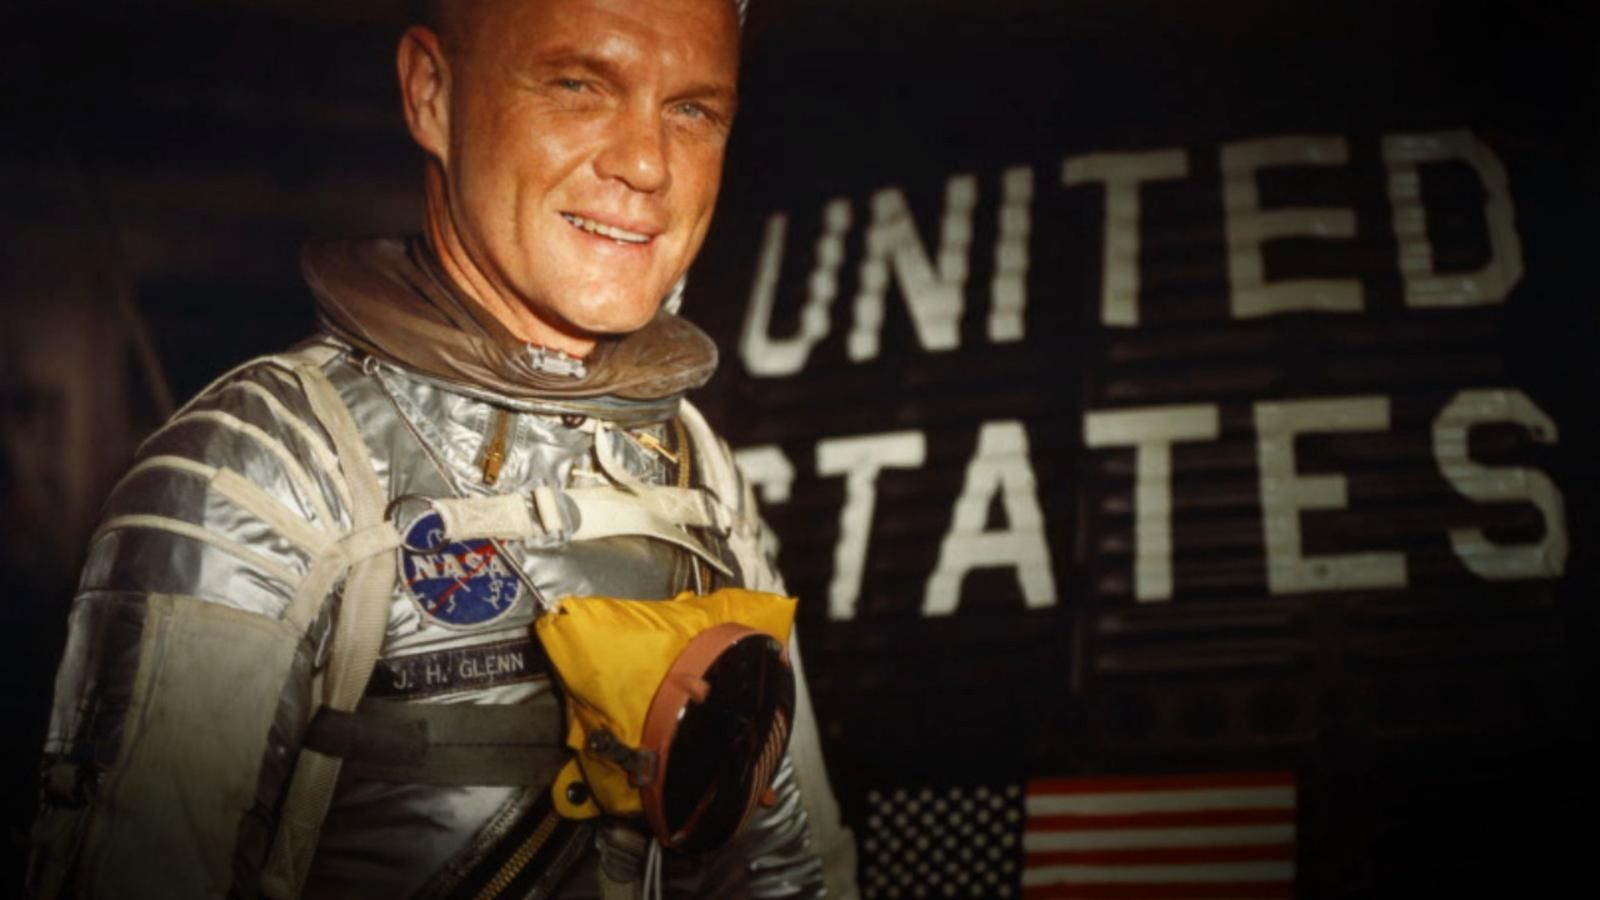 VIDEO: John Glenn Dead at 95